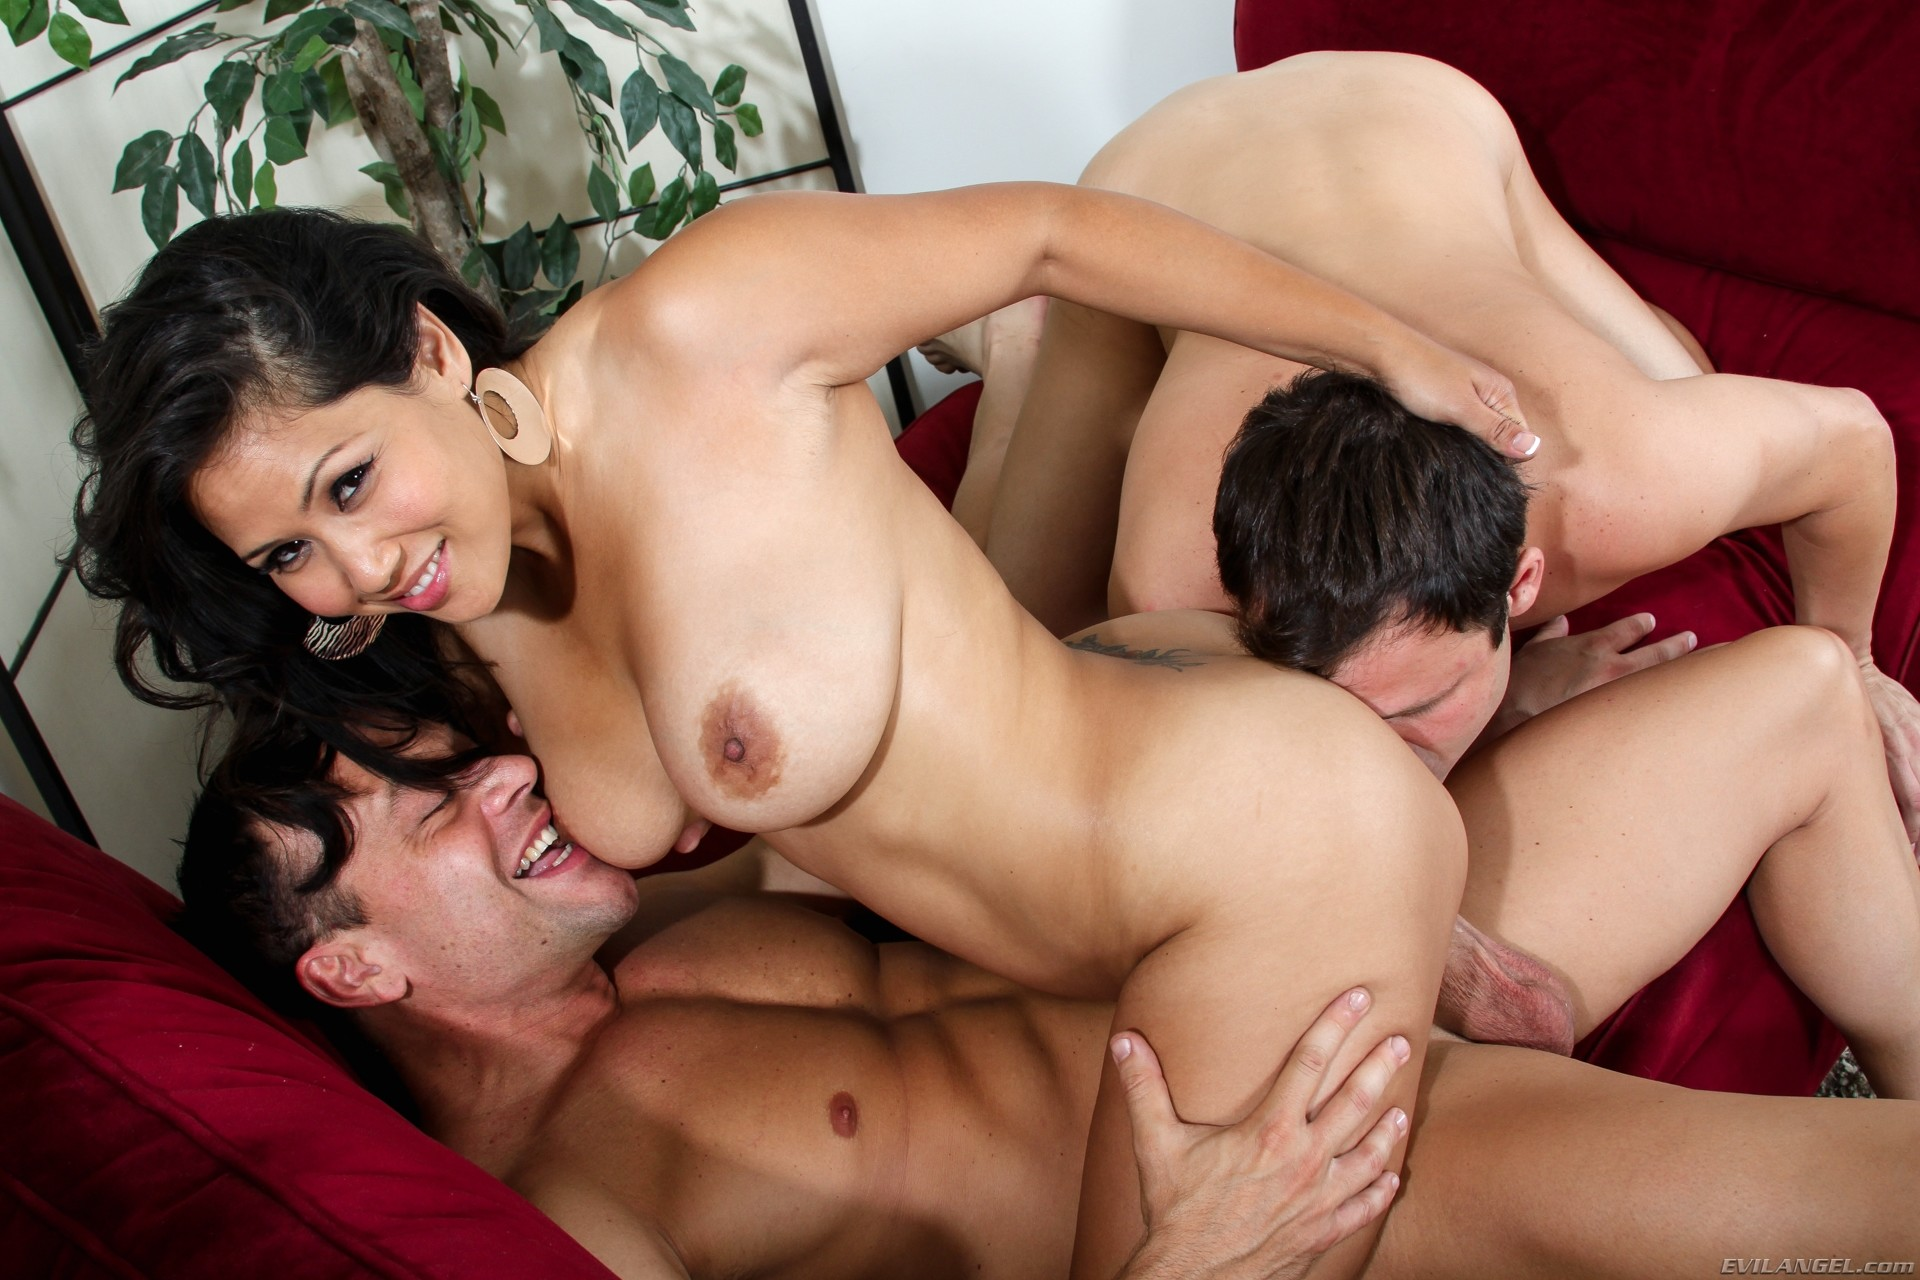 Jessica bangkok is blowing her young trainer - 1 part 8